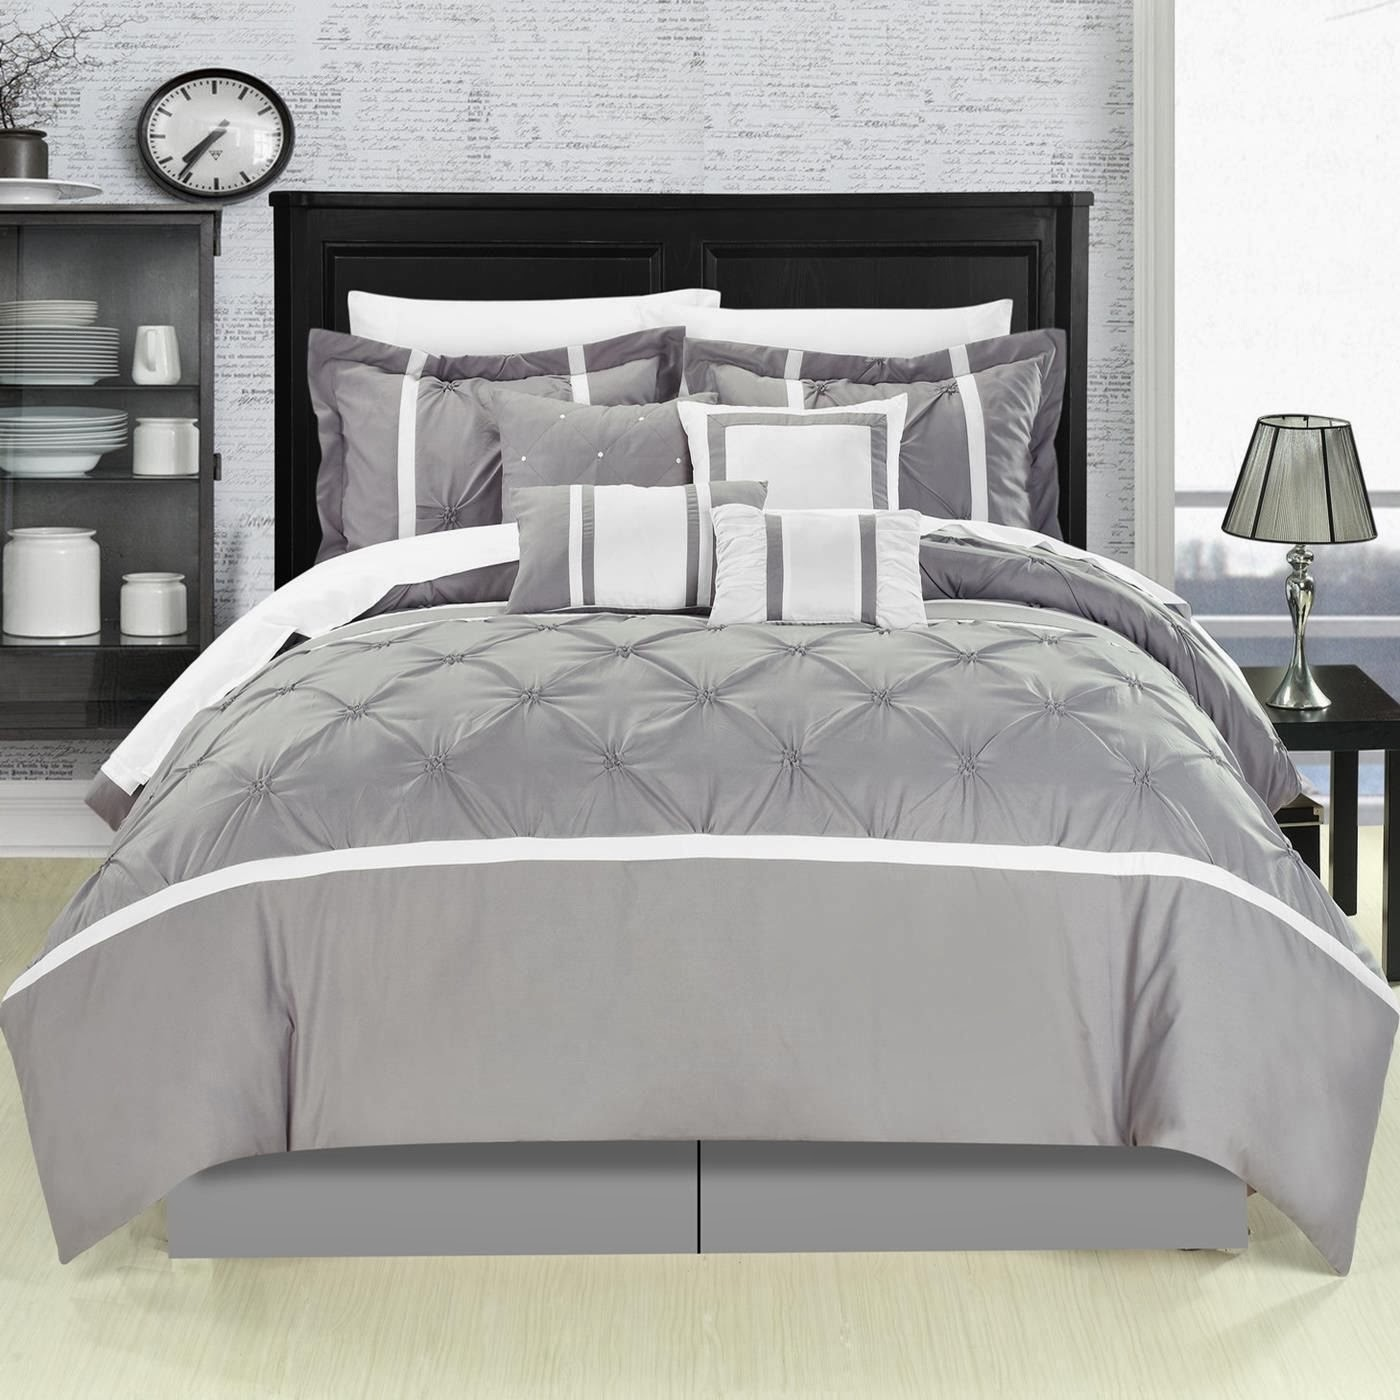 turquoise and grey bedroom grey and turquoise bedding vermont grey piece comforter decorate my house